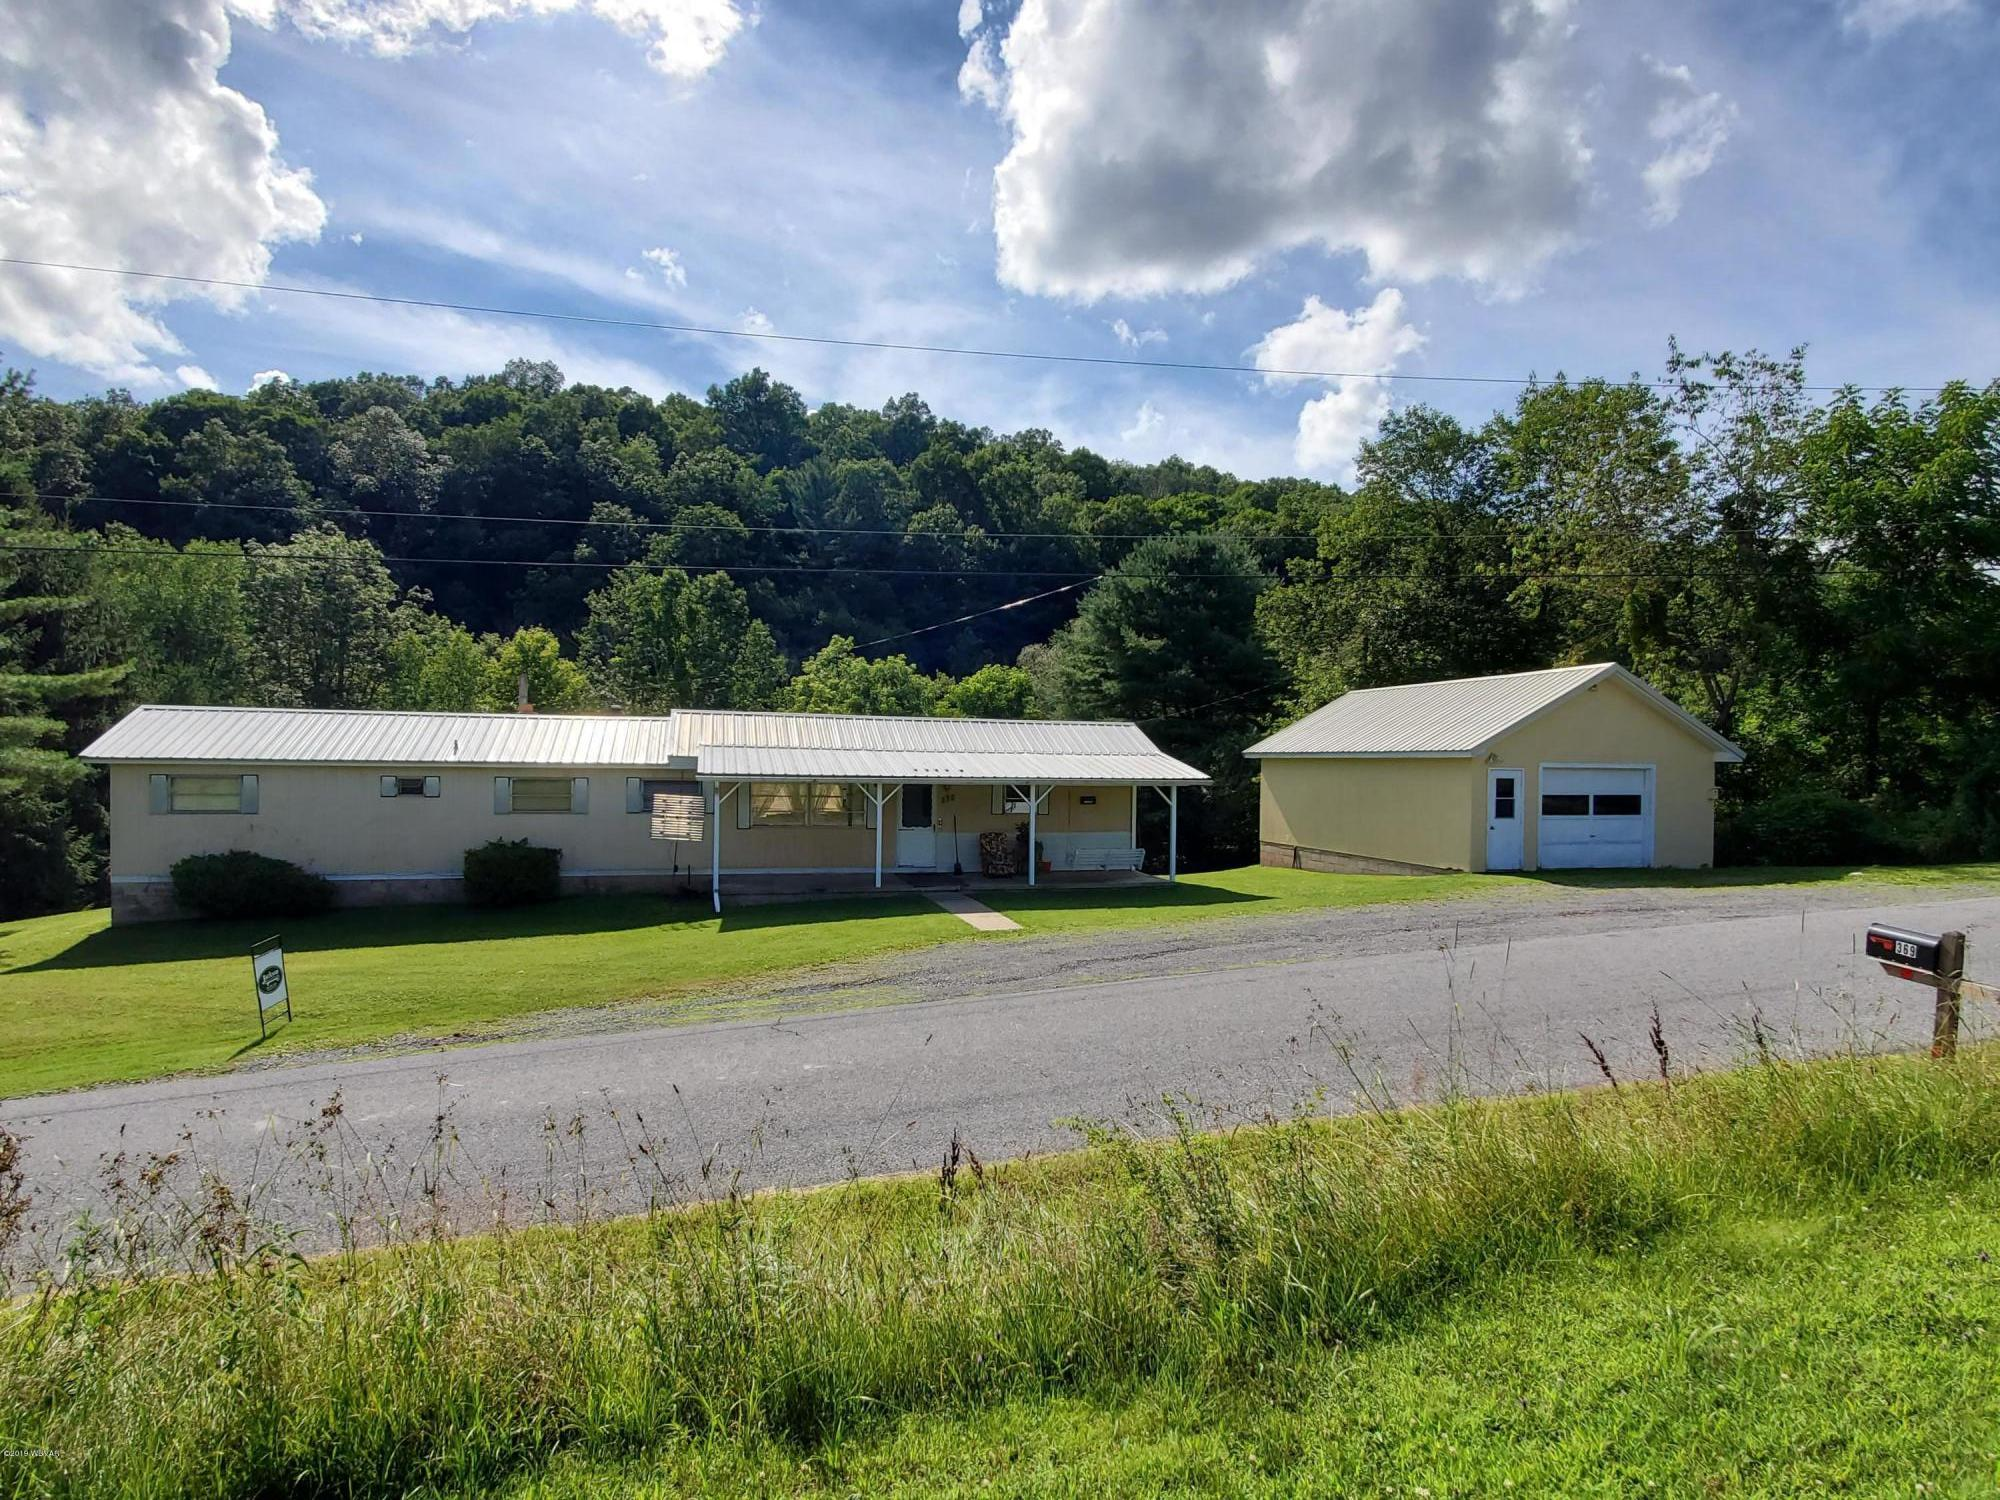 369 BRUCE ROAD,Cogan Station,PA 17728,3 Bedrooms Bedrooms,1 BathroomBathrooms,Residential,BRUCE,WB-88015